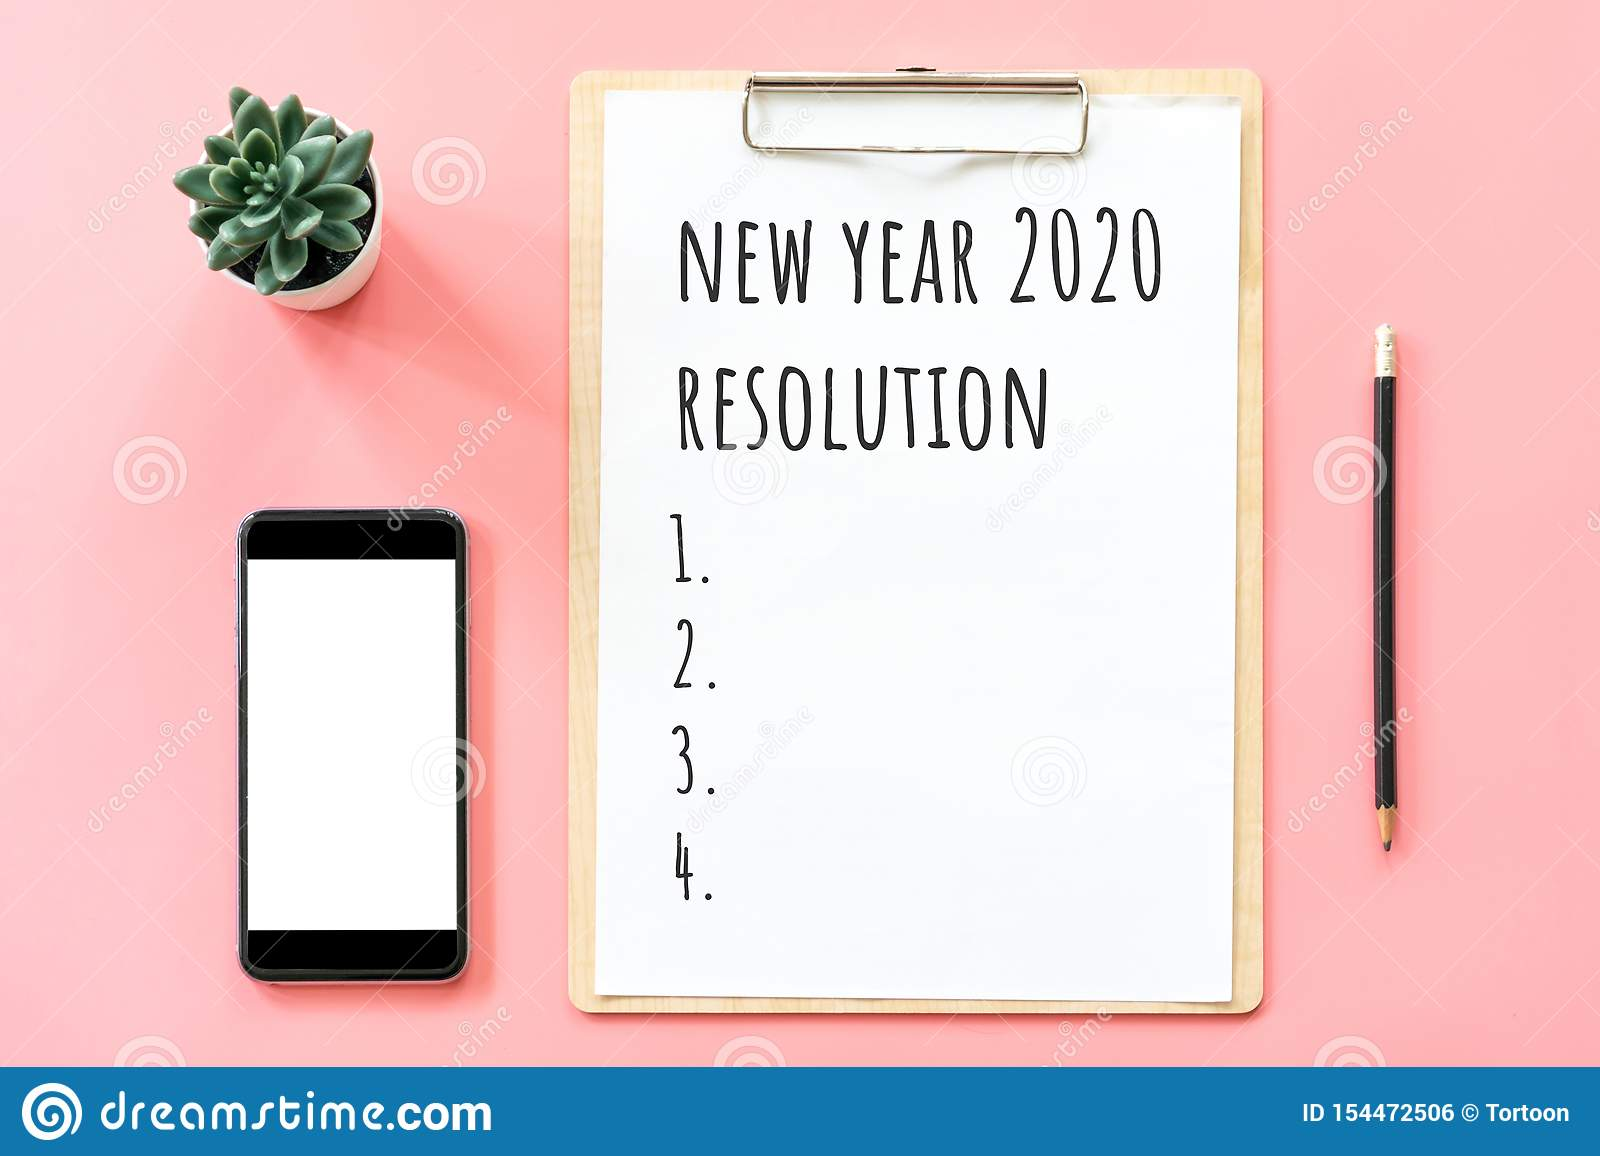 New Year Concept Resolution List In Stationery